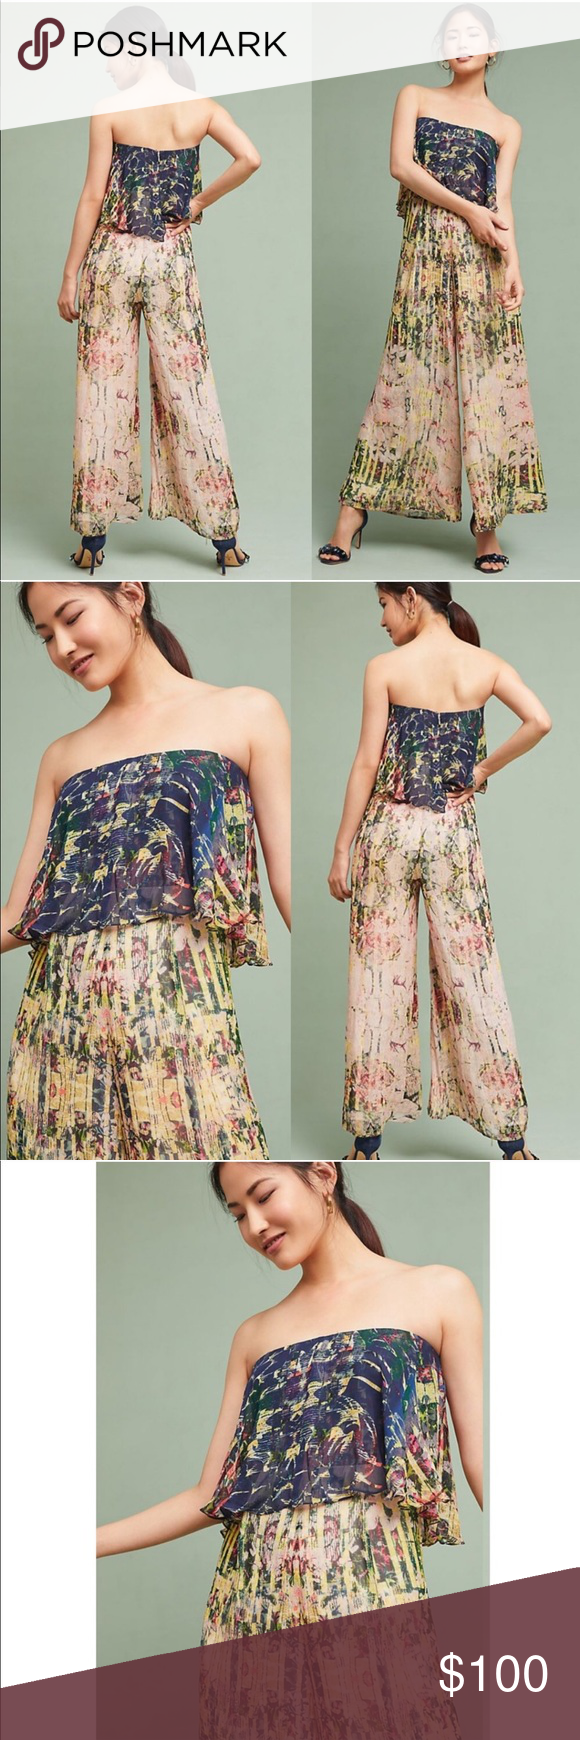 30edf12701a9 Anthropologie HTF Strapless Jumpsuit Size S New without tags Brand and size  tags fell off Anthropologie